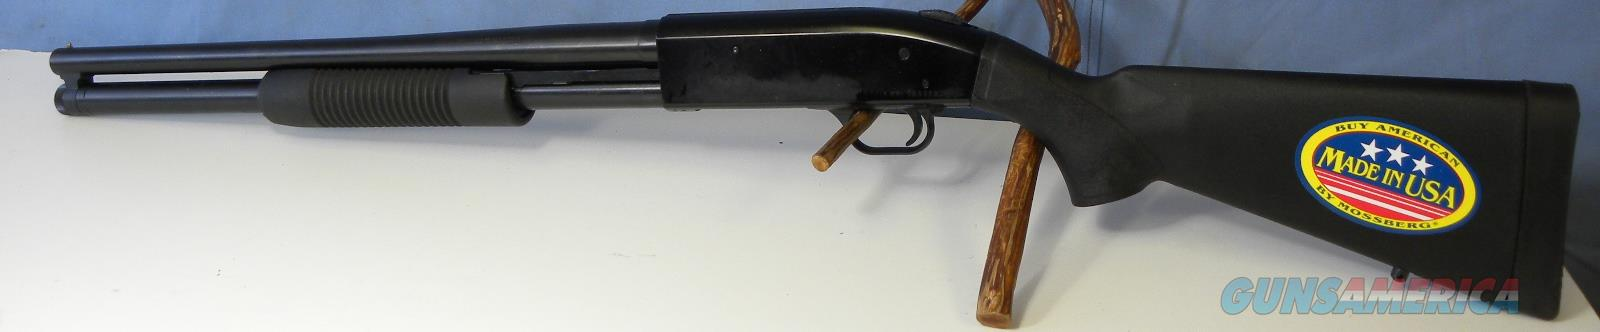 Mossberg 500 Persuader 50579  Guns > Shotguns > Mossberg Shotguns > Pump > Tactical